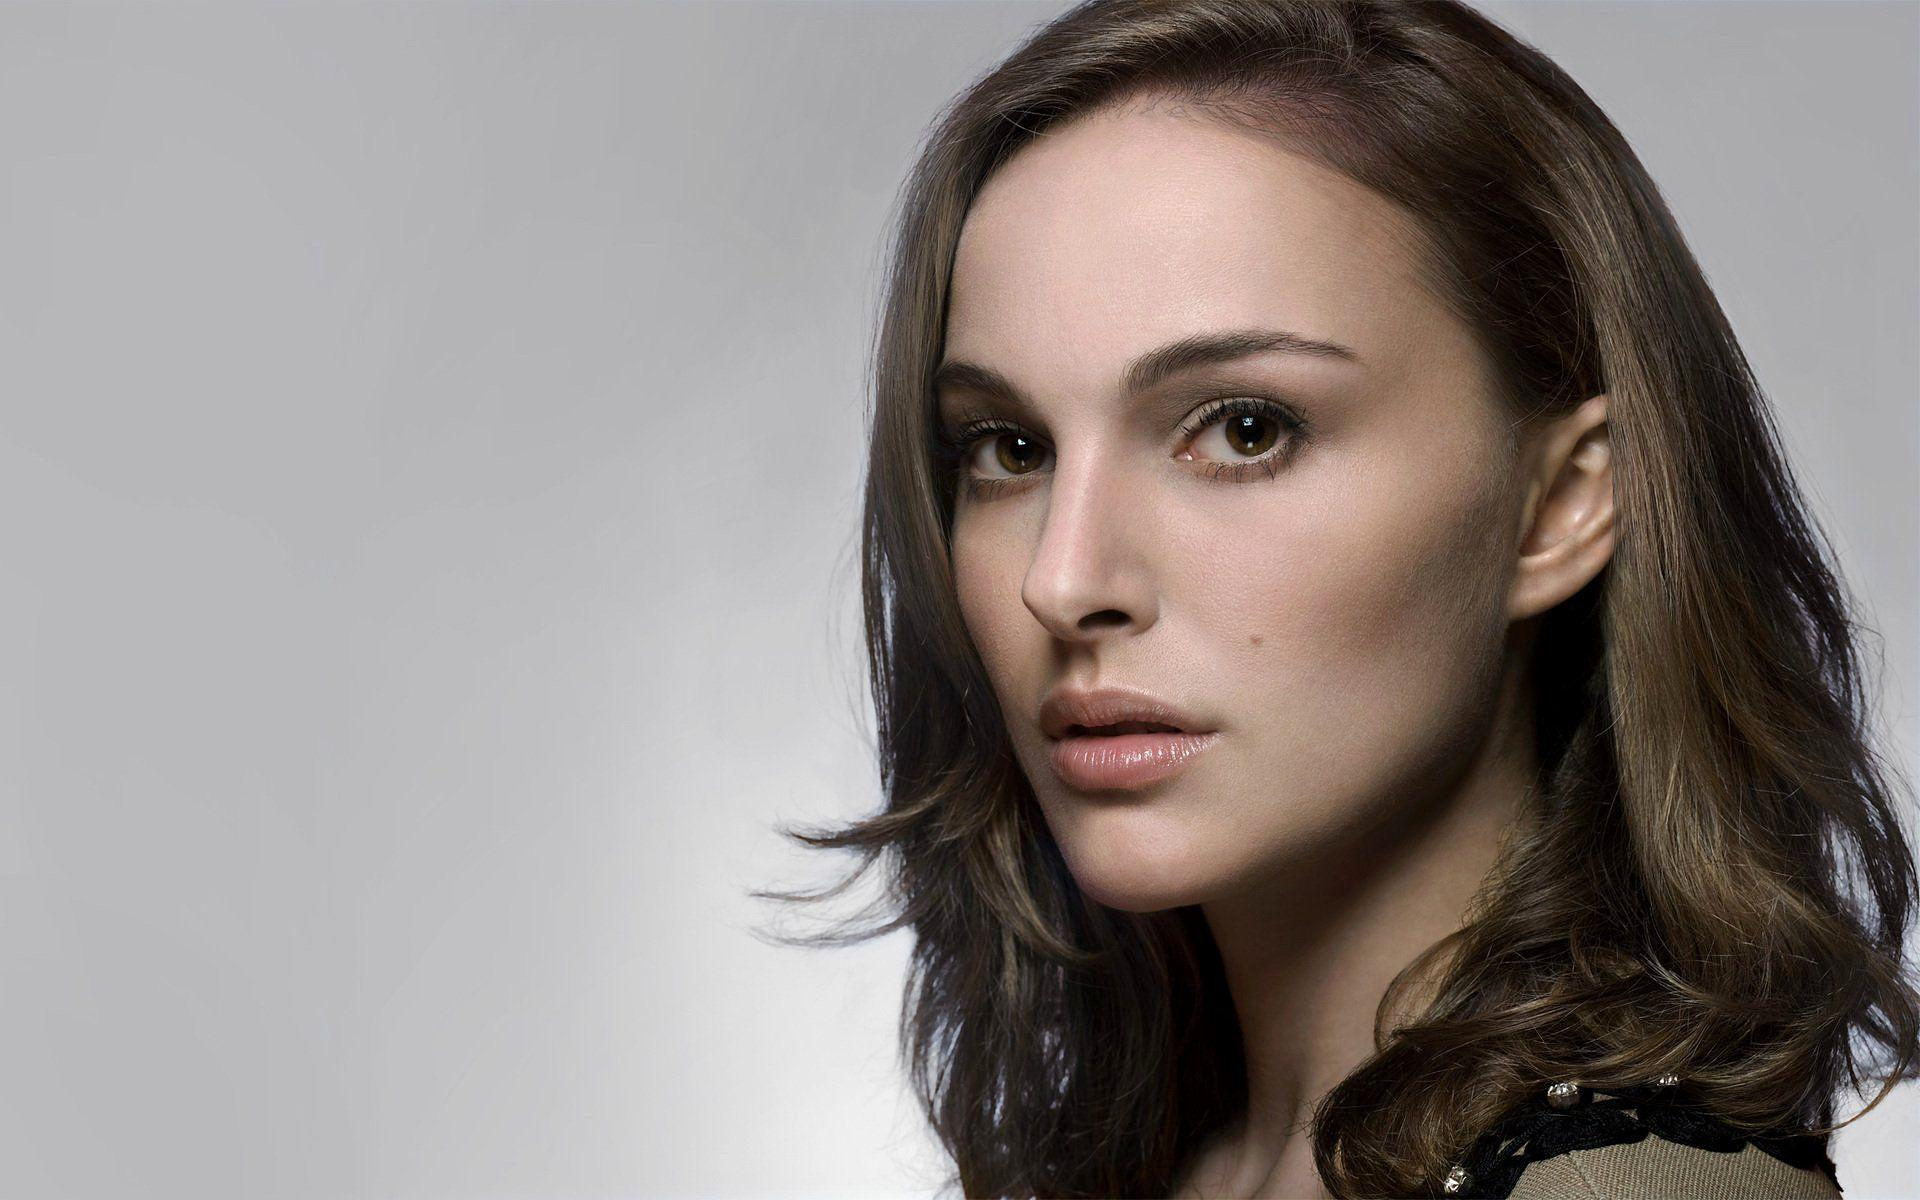 natalie portman hot wallpapers 98 - Wallpapers Mela